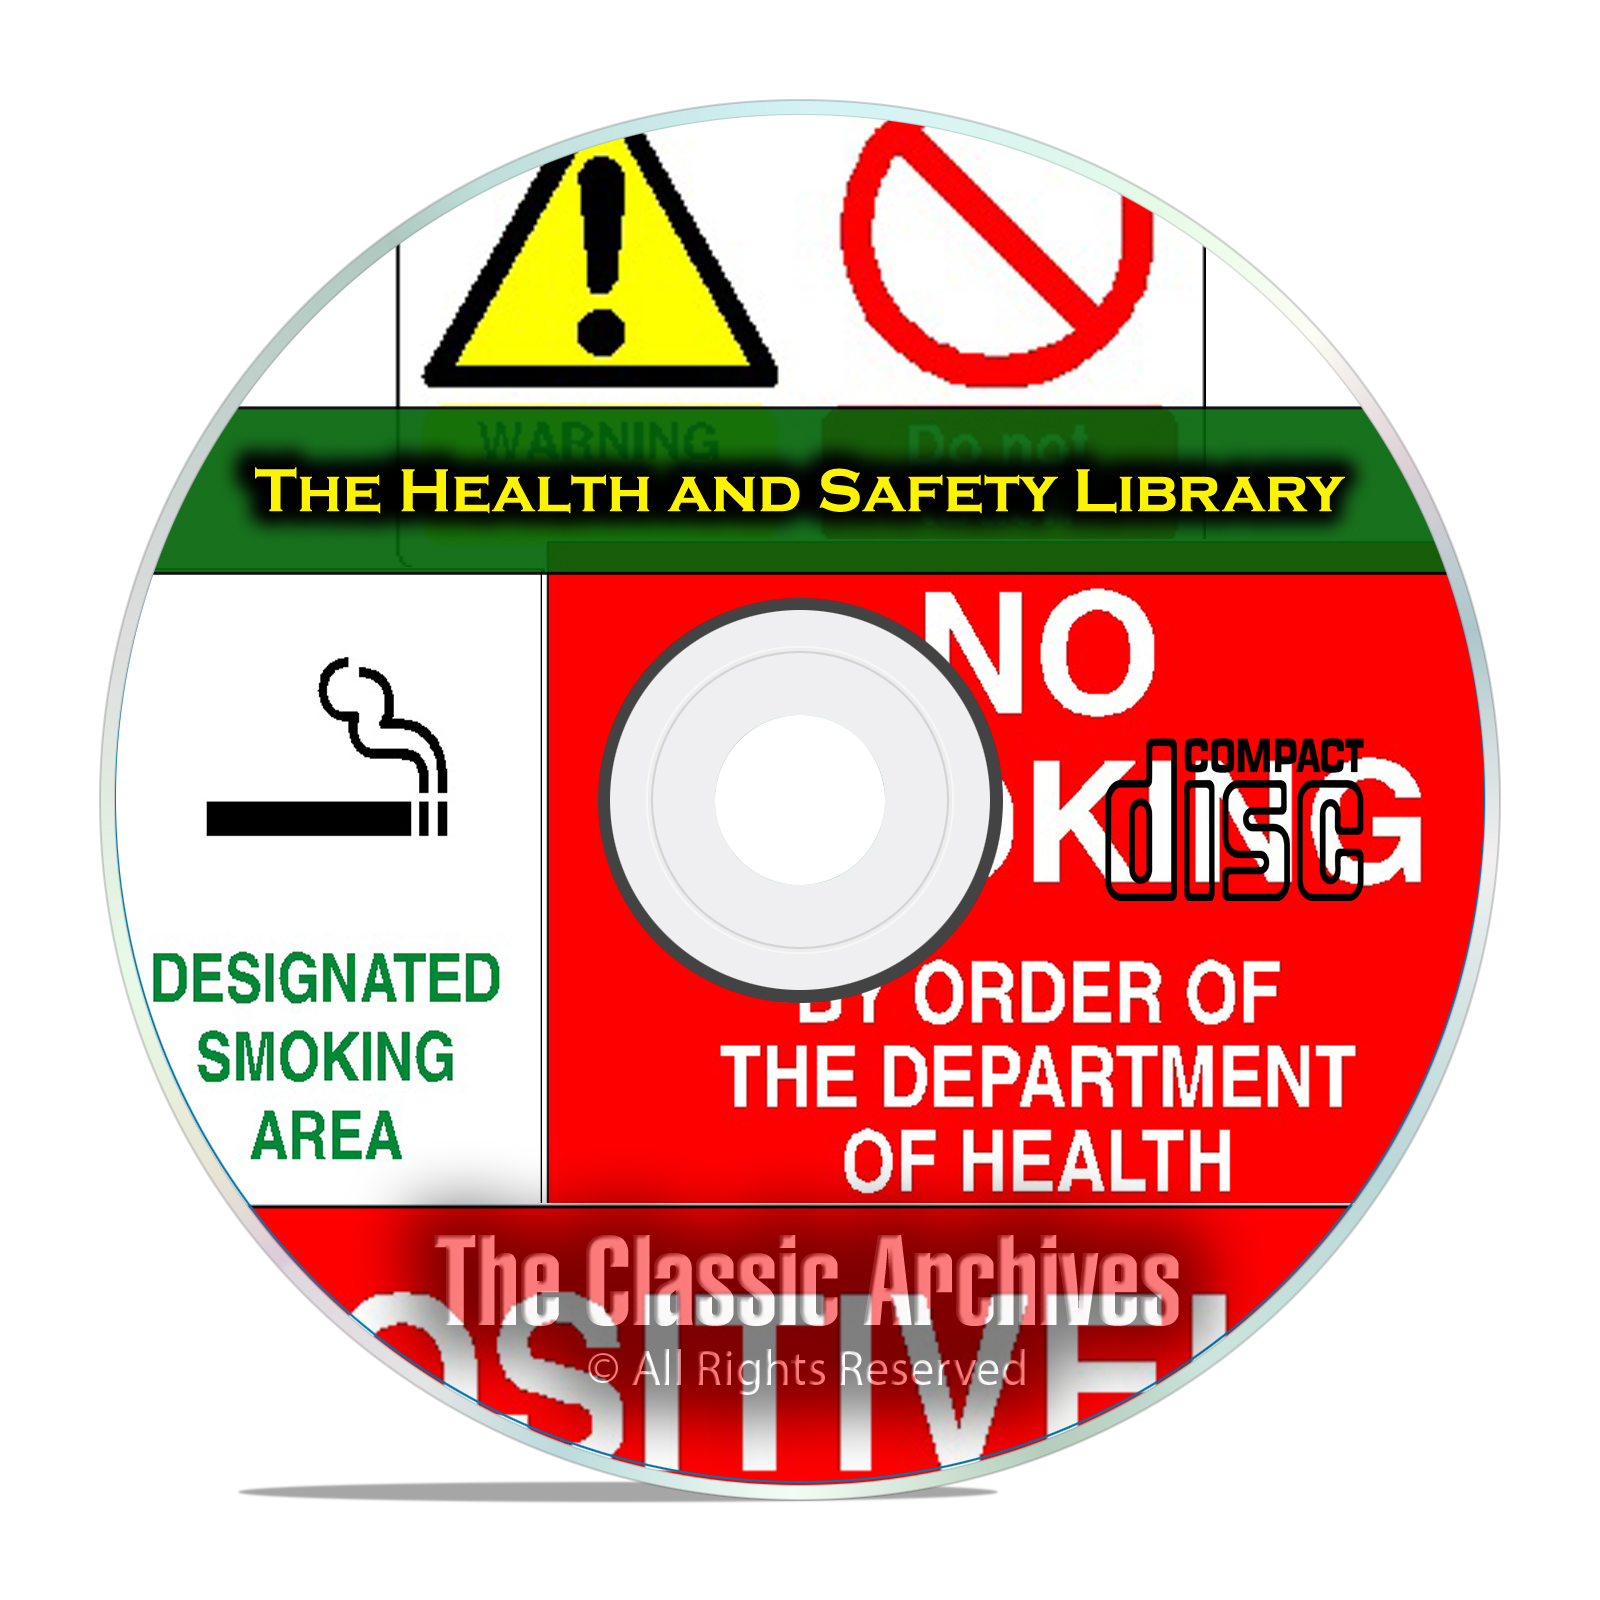 8,500+ Printable Health And Safety OSHA Warning Signs & Posters on CD